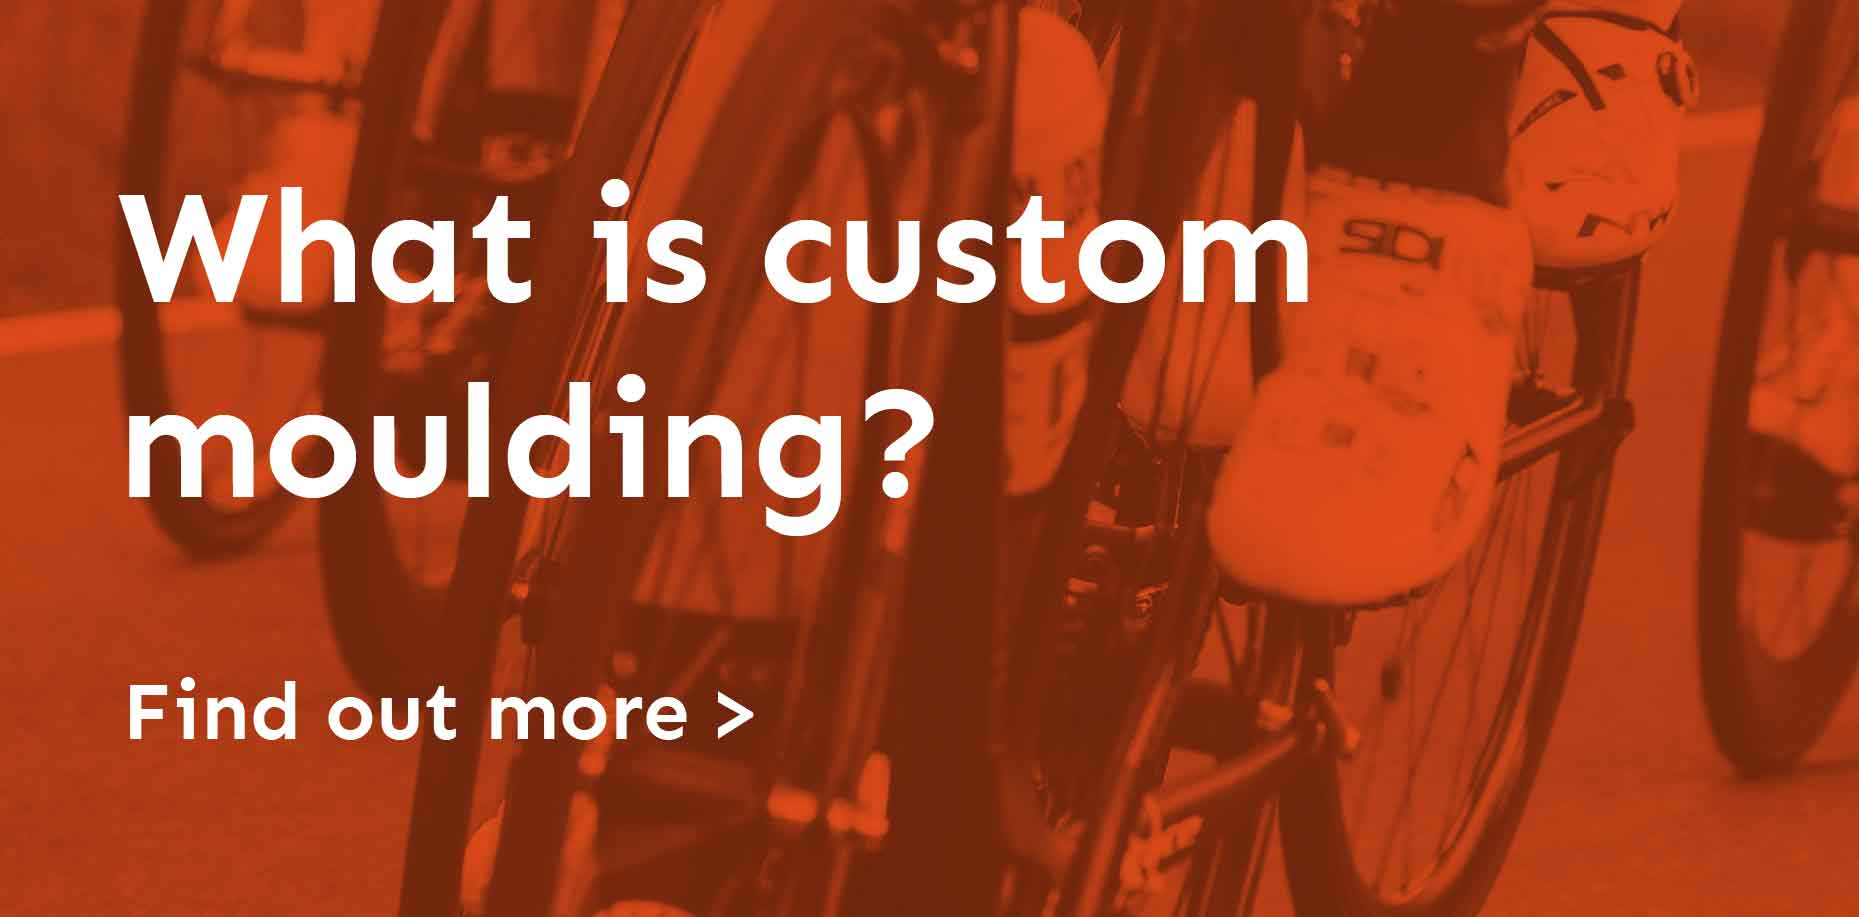 What is custom moulding?